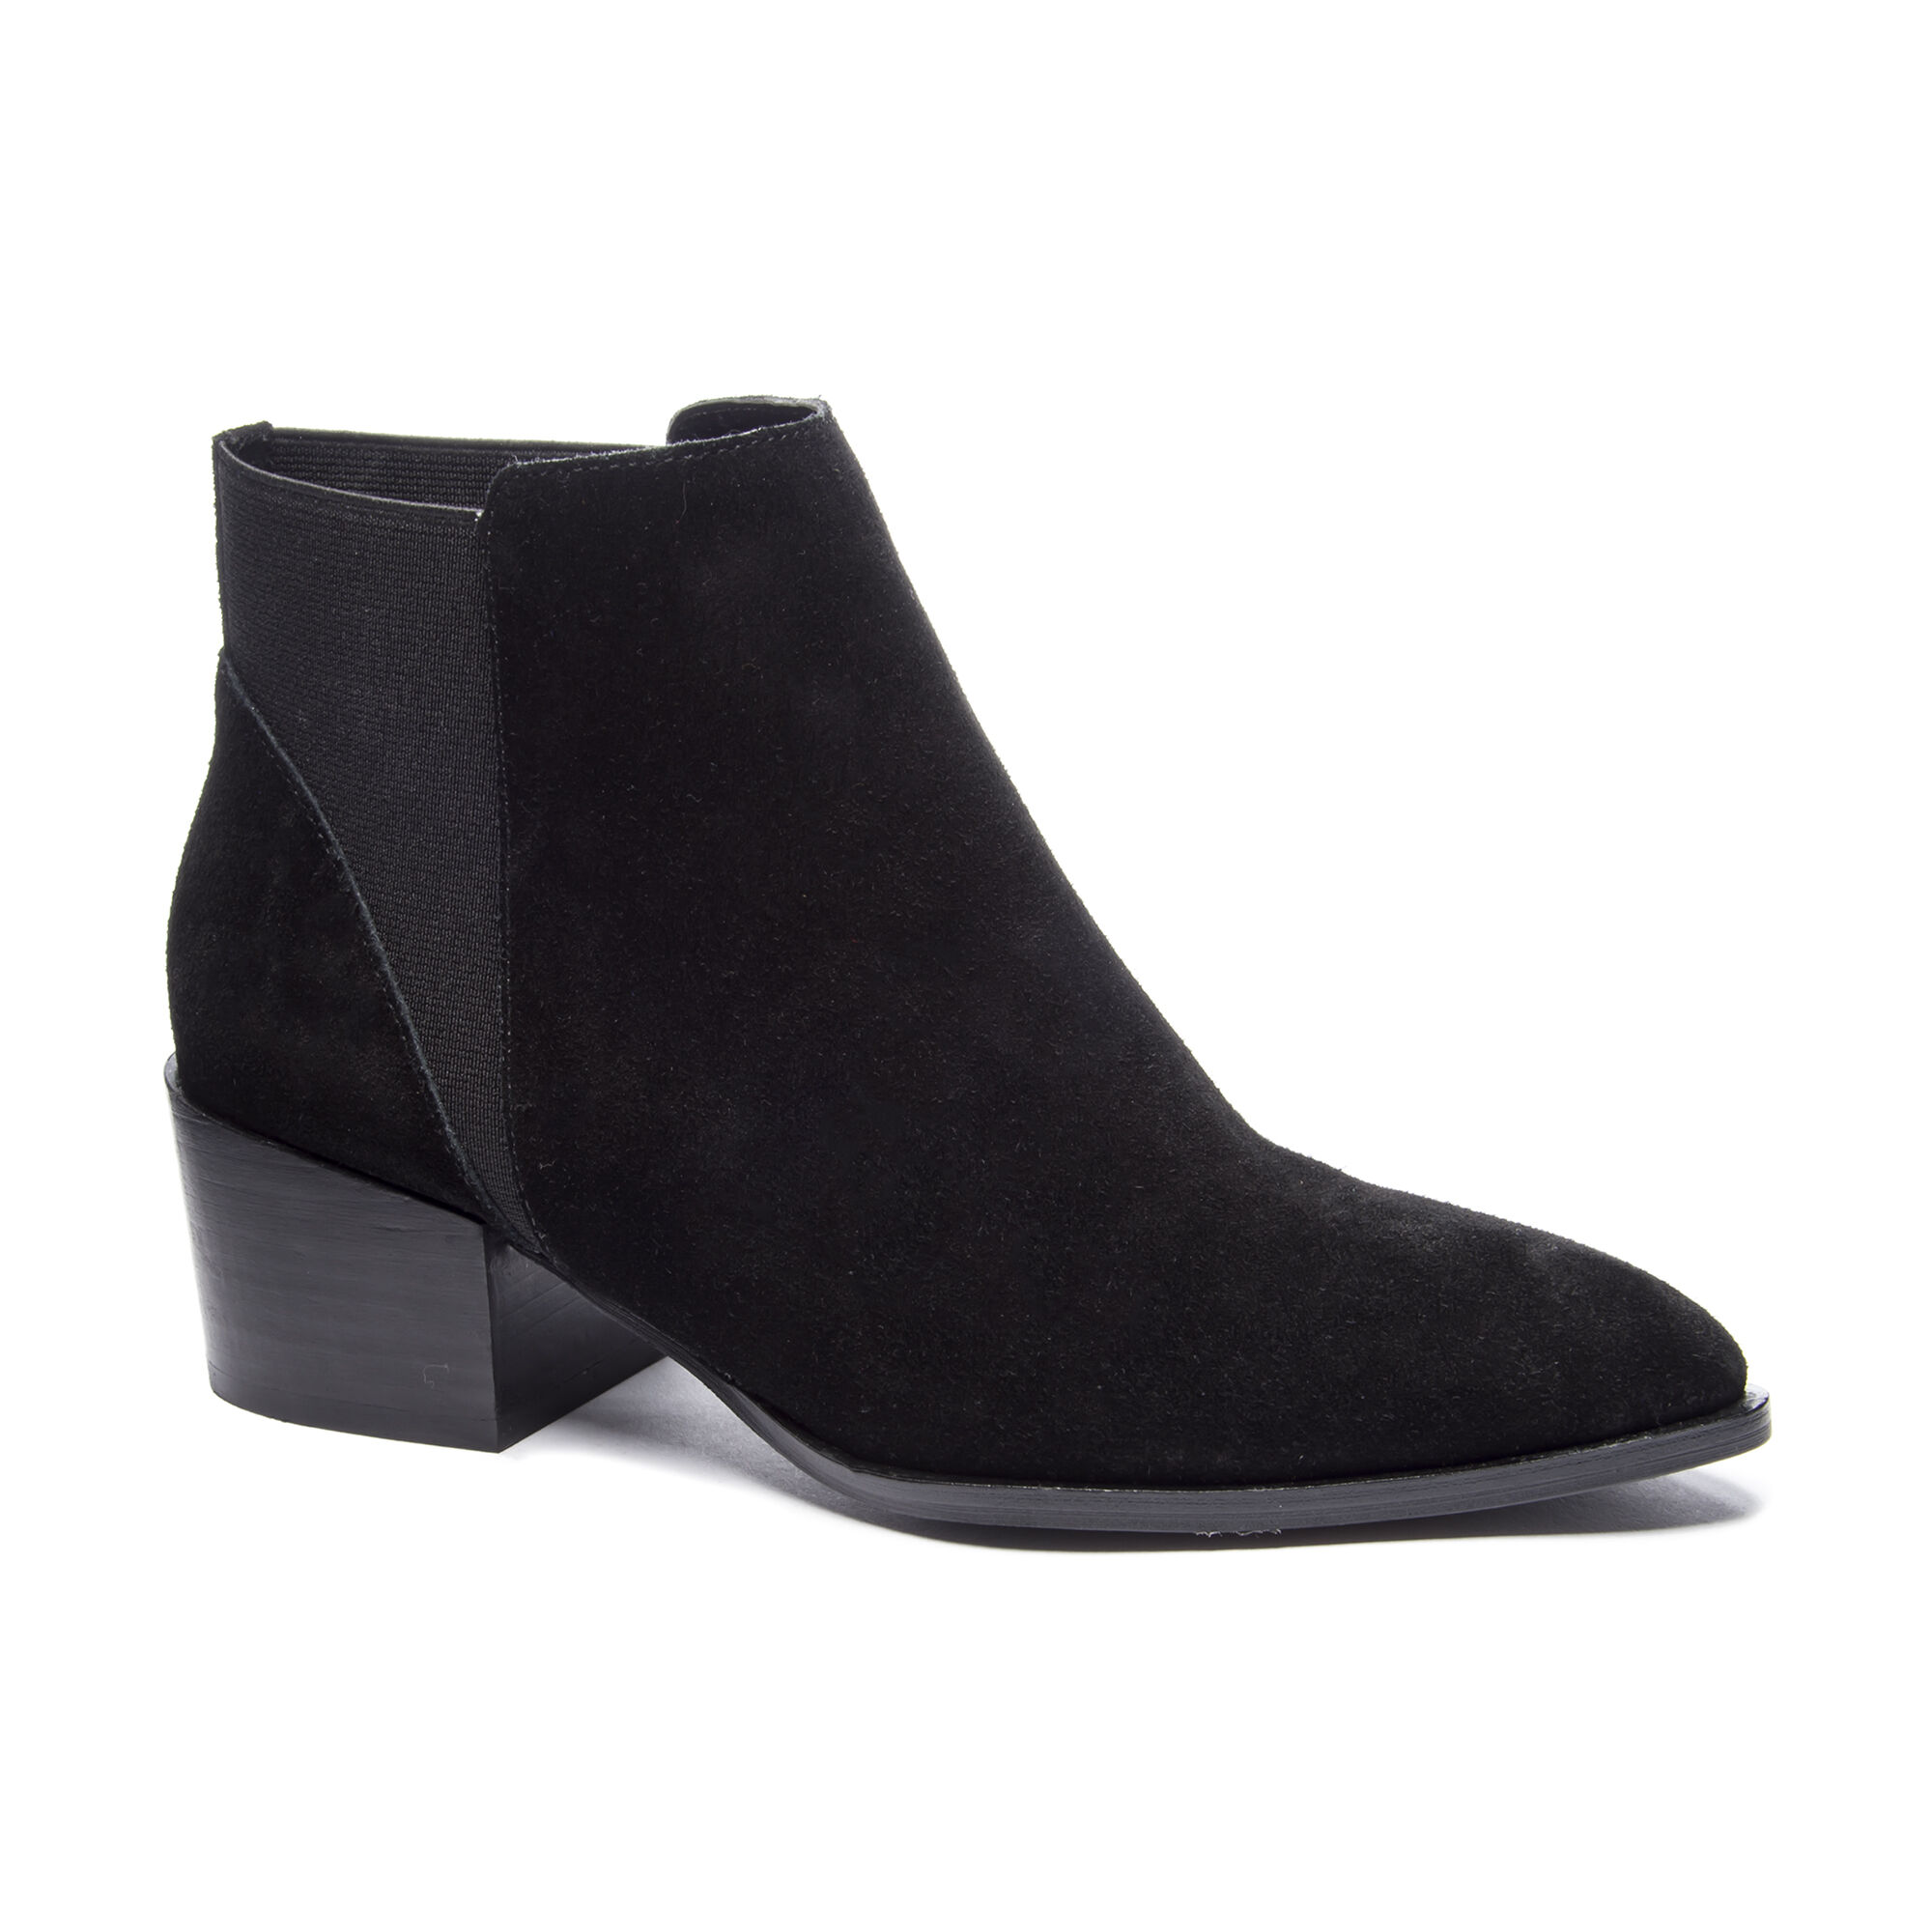 0d17d9d66ee Rizzo chelsea boots